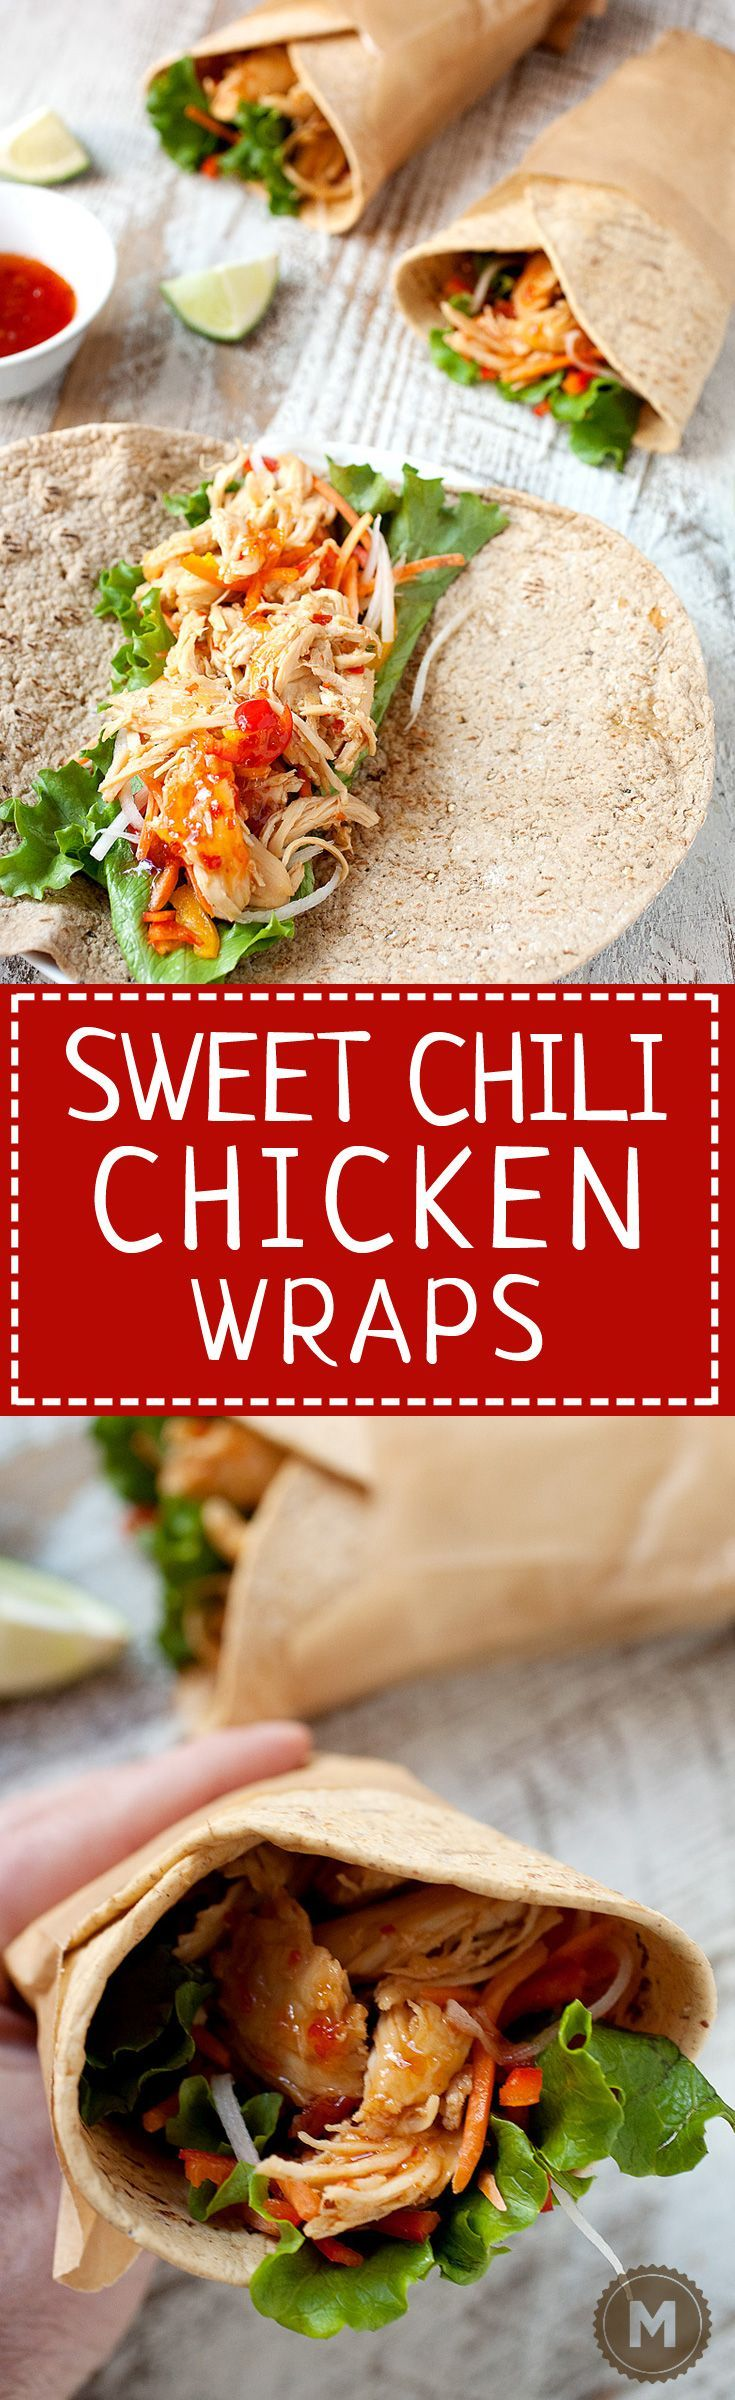 Sweet Chili Chicken Wraps: Shredded chicken simmered in a simple sweet chili lime sauce and stuffed inside flatbread wraps with fresh, crunchy veggies. The perfect quick wrap for dinner! #sponsored | http://macheesmo.com